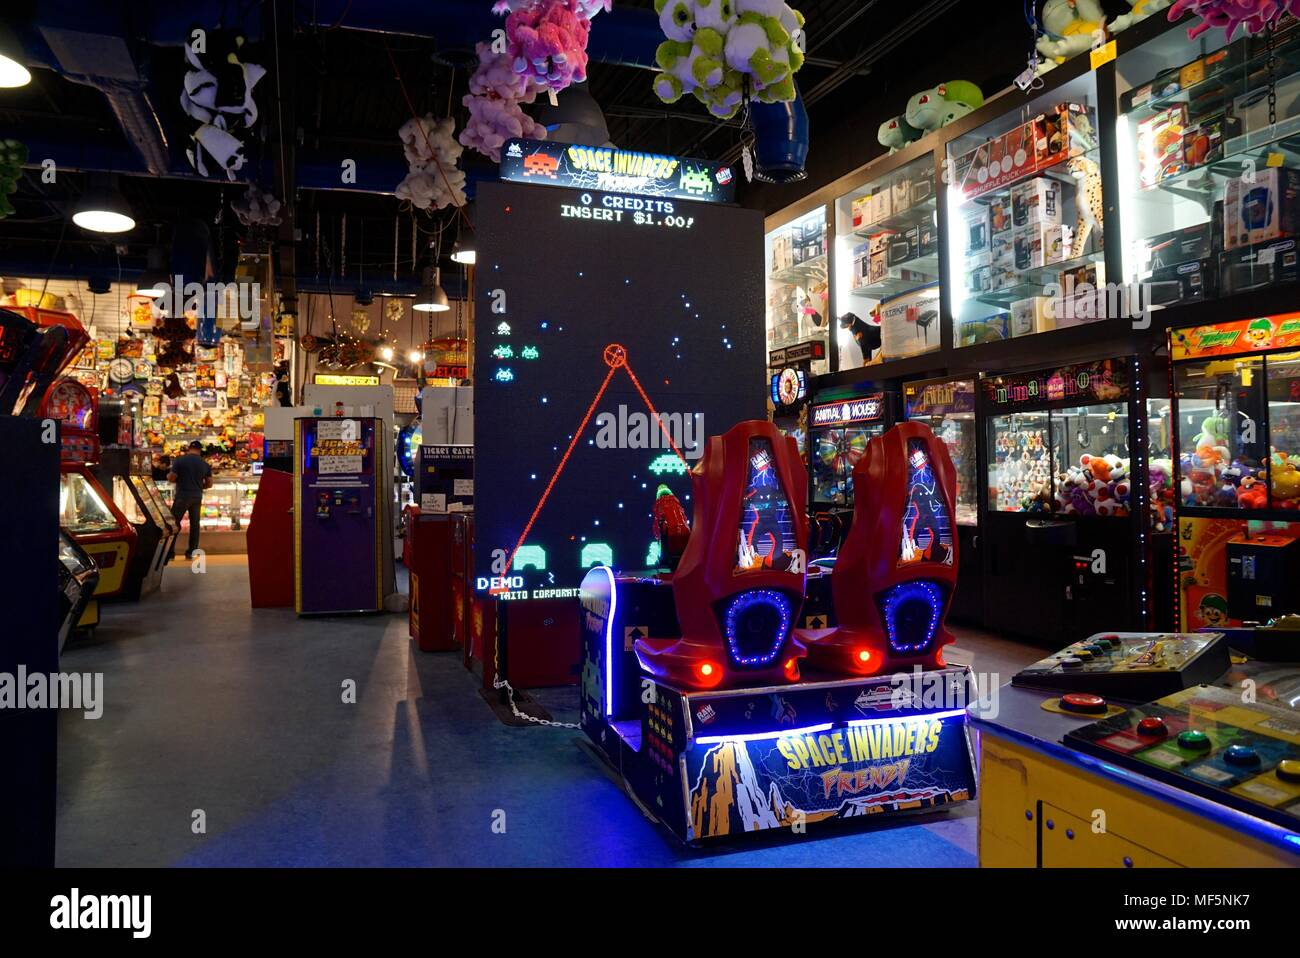 Space Invaders game in Ocean City Arcade - Stock Image